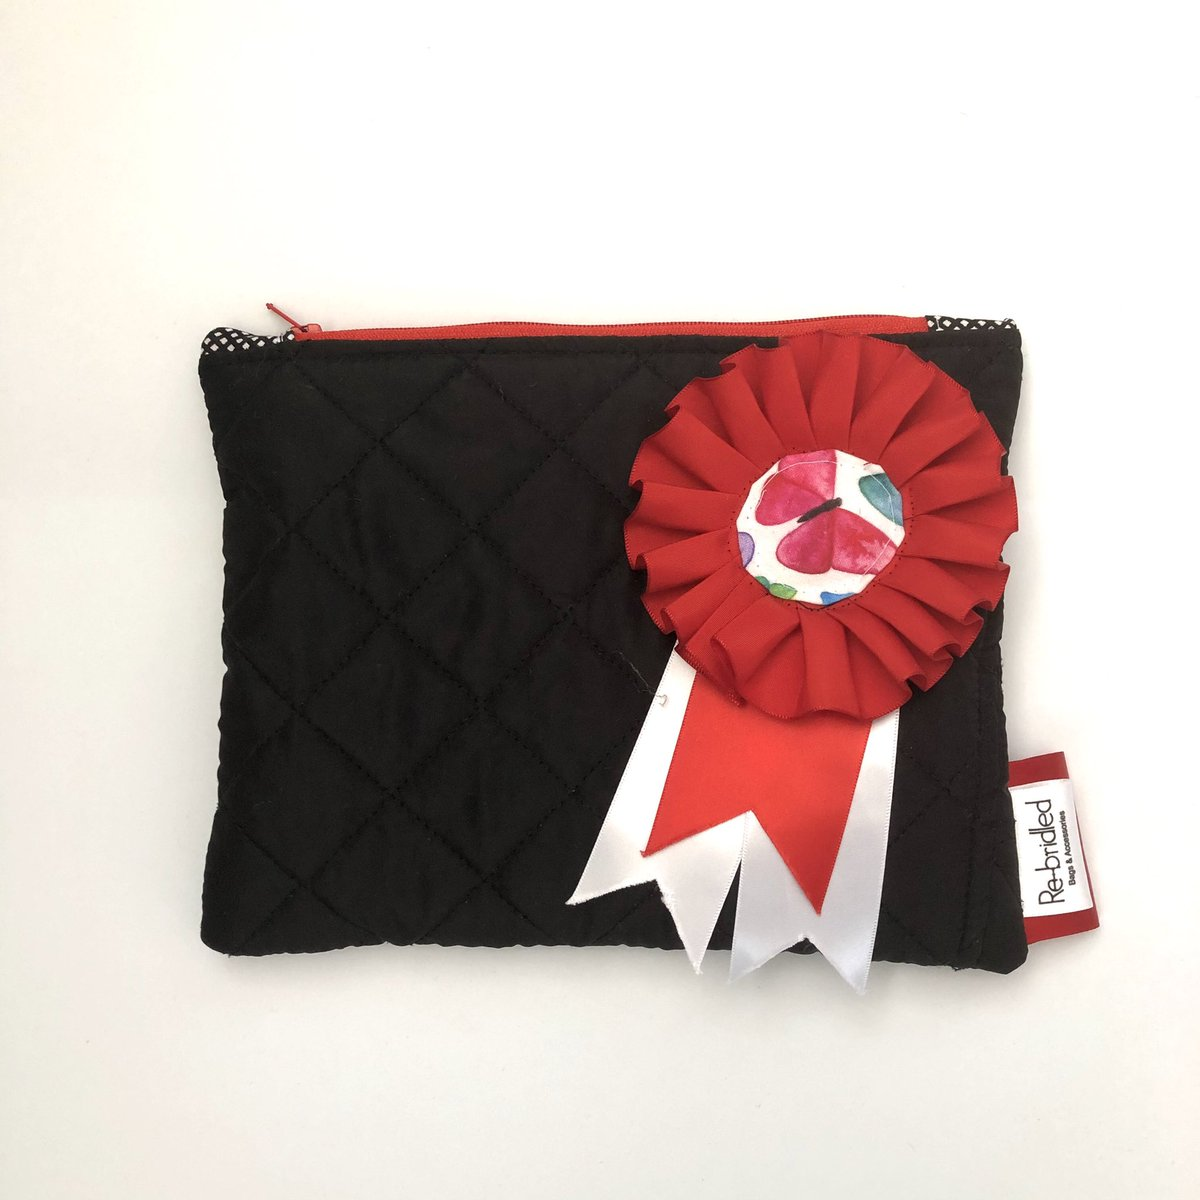 Cute little black pouch with a genuine winning rosette attached Only £20 free postage   https://www.etsy.com/uk/listing/778465858/equestrian-purse-horse-purse-equine-gift…  #horses #equestrian #Countryside #equestrianchic #horsechat #StayAtHome #shopuk #equestrianuk #countryfashion #countrylivingpic.twitter.com/Tqa8rVk2XR